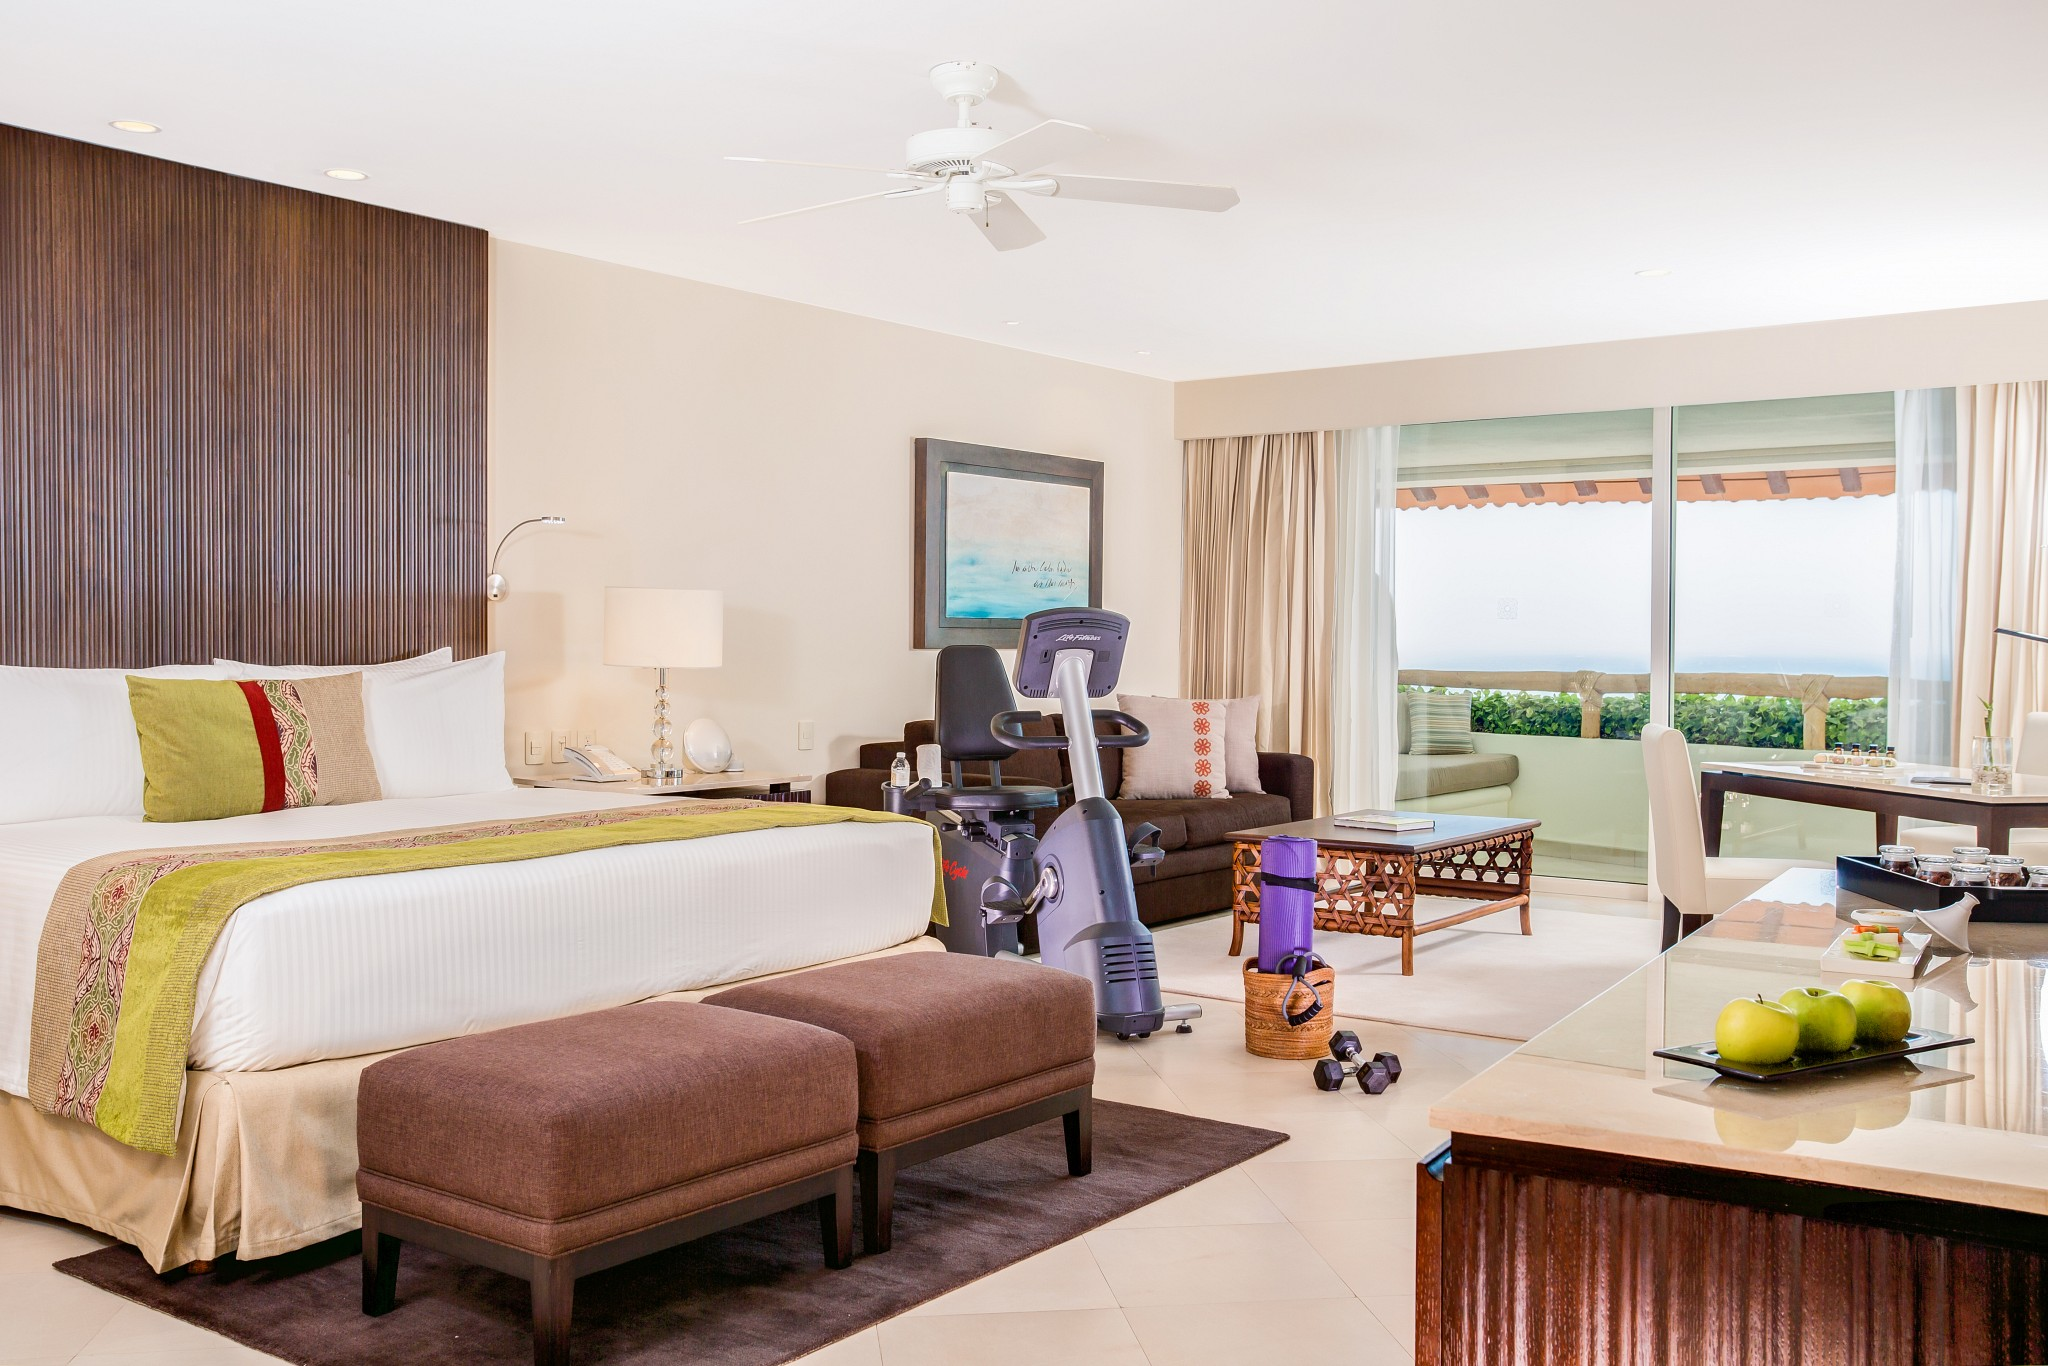 The Wellness Suite at Velas Resorts.